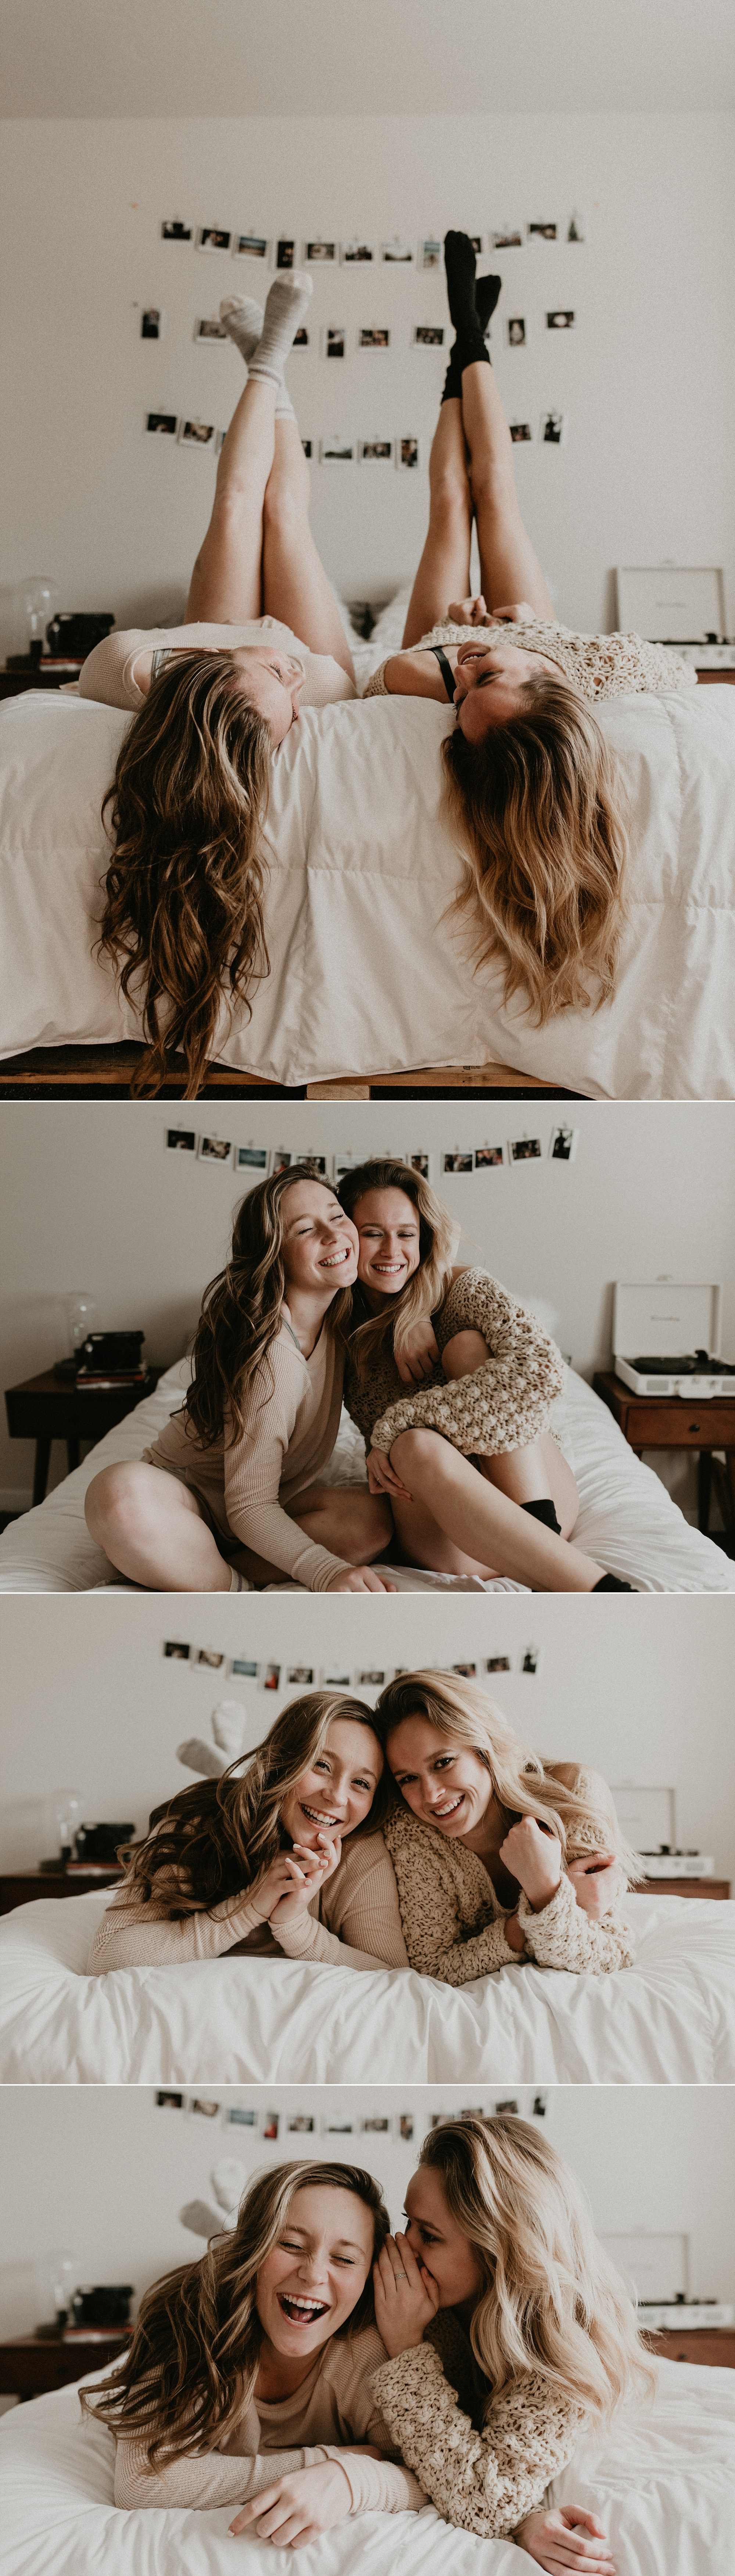 Boise Boudoir Photographer Boudoir By Kayla Makayla Madden Photography Idaho Lifestyle Boudoir Pizza Naps Boise Senior Photographer Best Friends Sweater Weather Polaroids Tumblr Girls